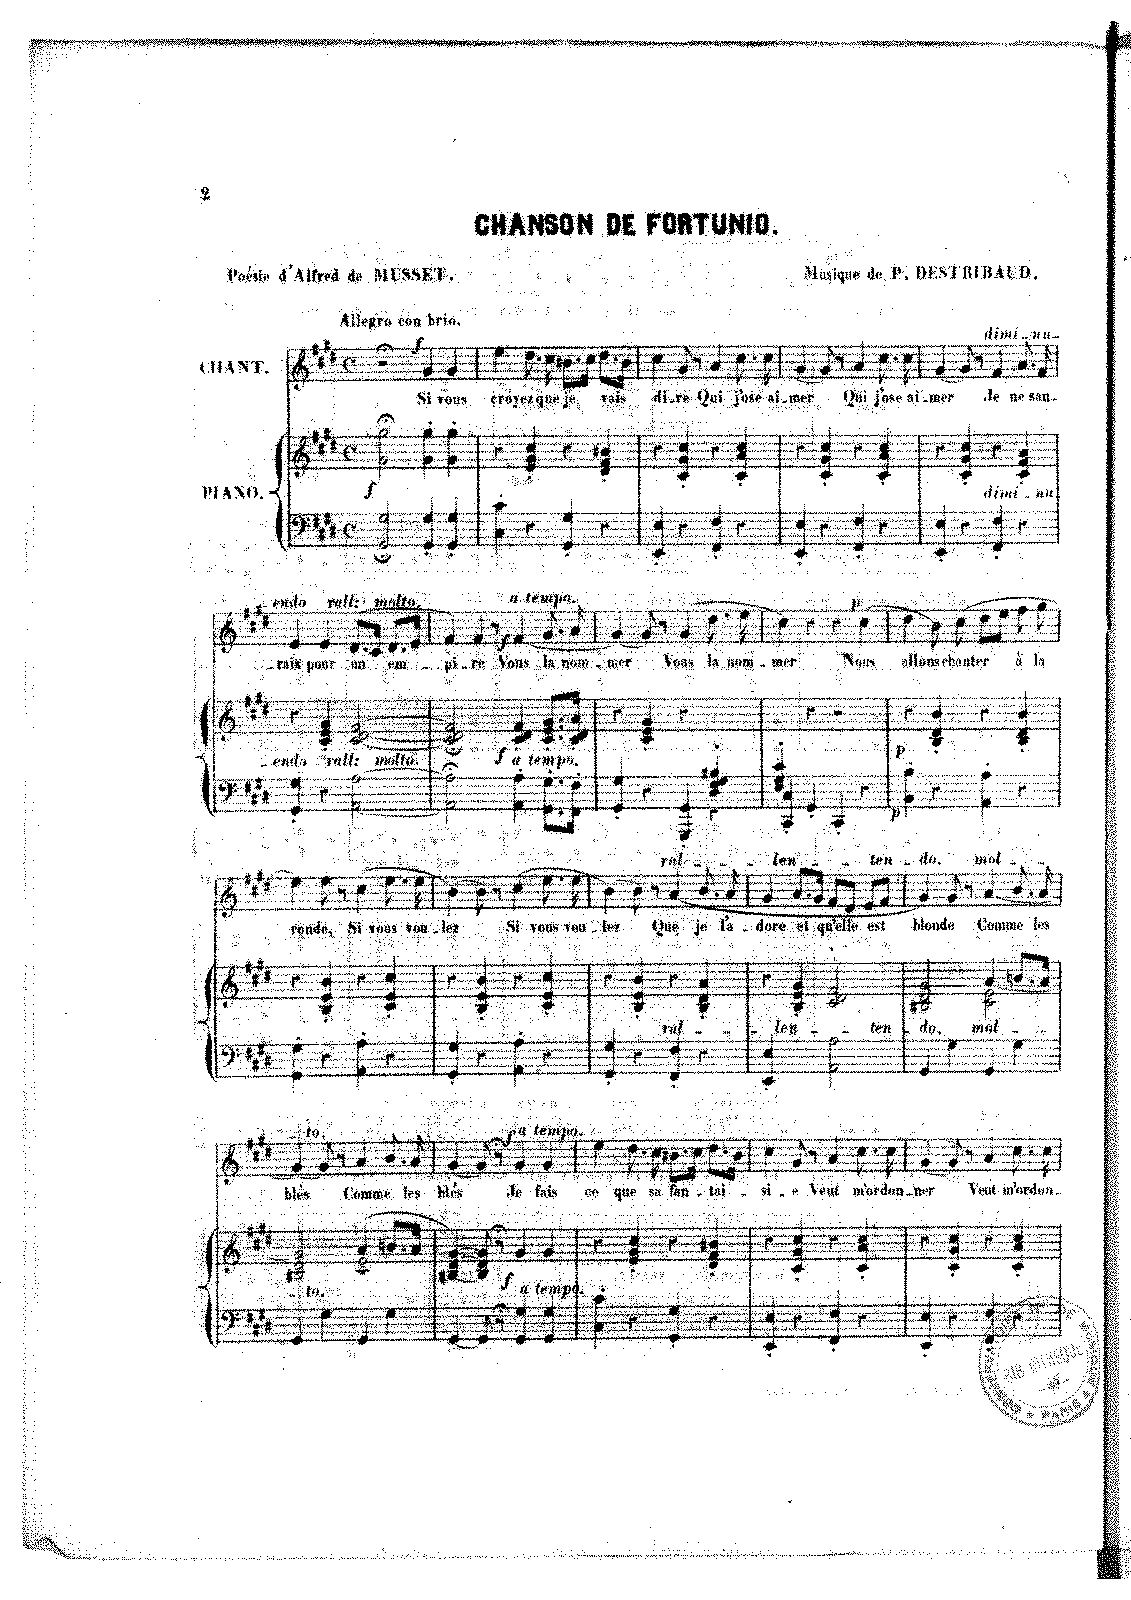 PMLP563903-Destribaud Paul - Chanson de Fortunio 1853.pdf